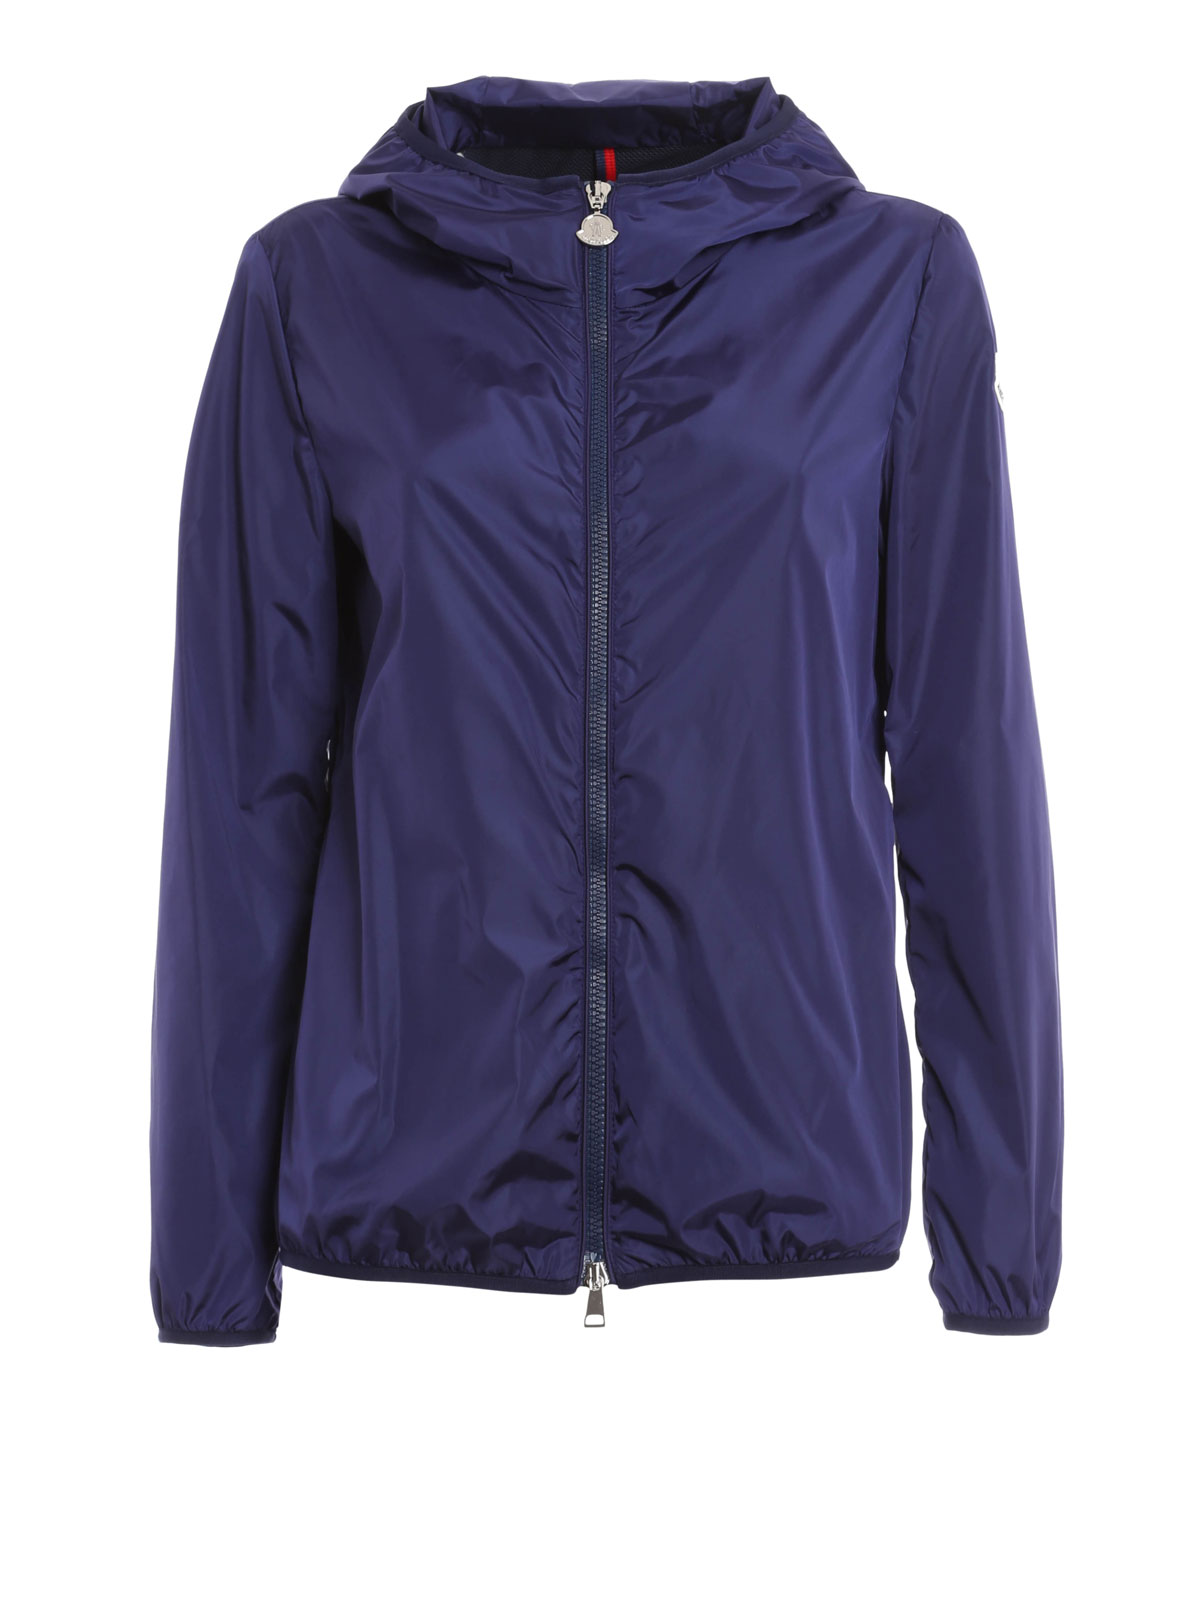 Vive waterproof jacket by Moncler - casual jackets | iKRIX